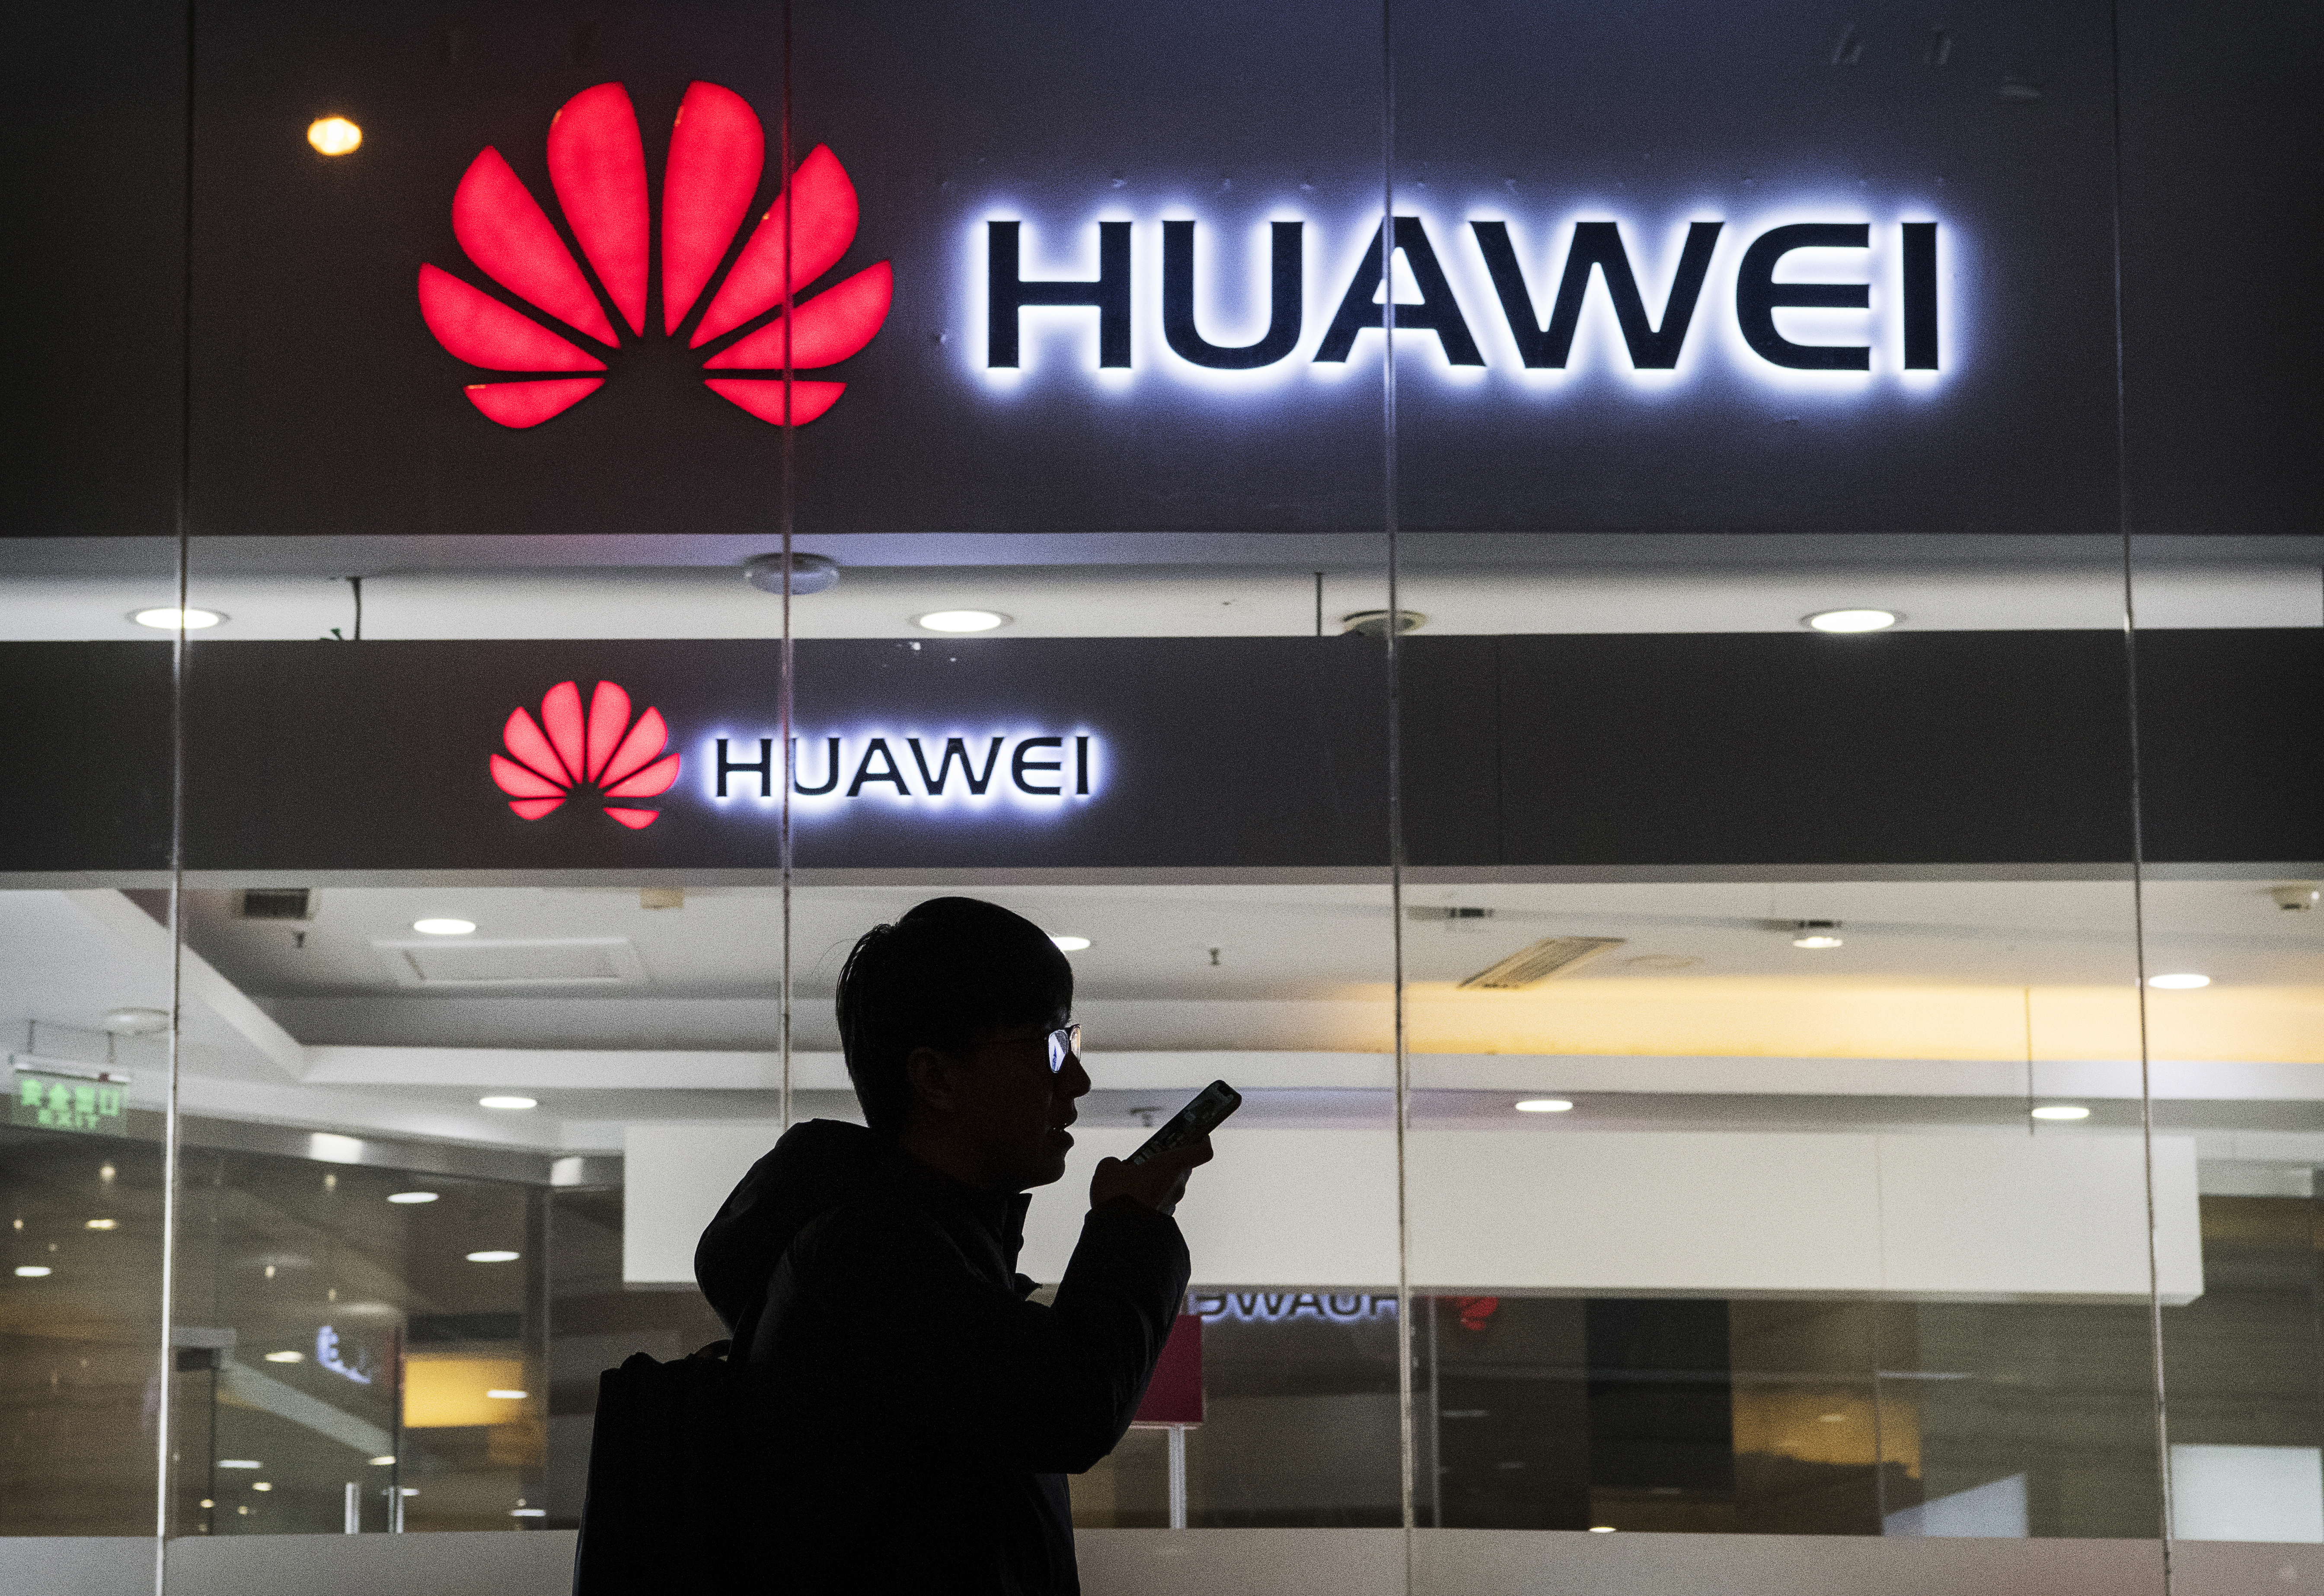 A pedestrian talks on the phone while walking past a Huawei store in Beijing on Jan. 29.